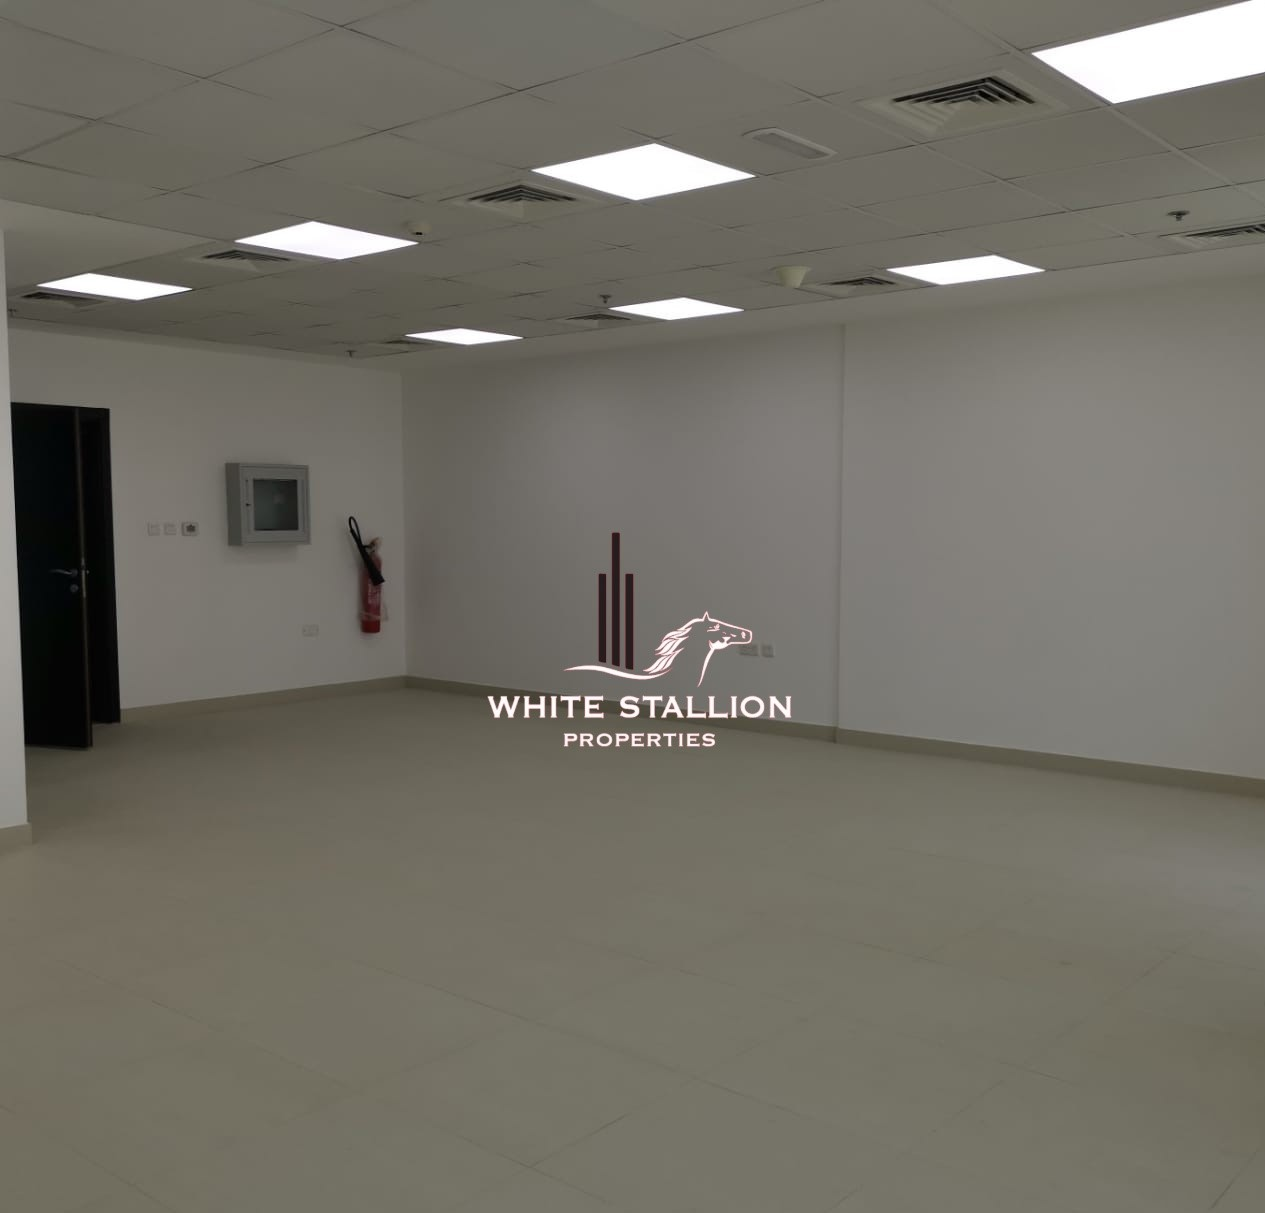 CALL MUFADDAL HUNAID +971 55 840 9211 BRAND NEW FITTED OFFICE + HIGH FLOOR + LAKE VIEW + NEAR METRO STATION 35K IN PREATONI TOWER